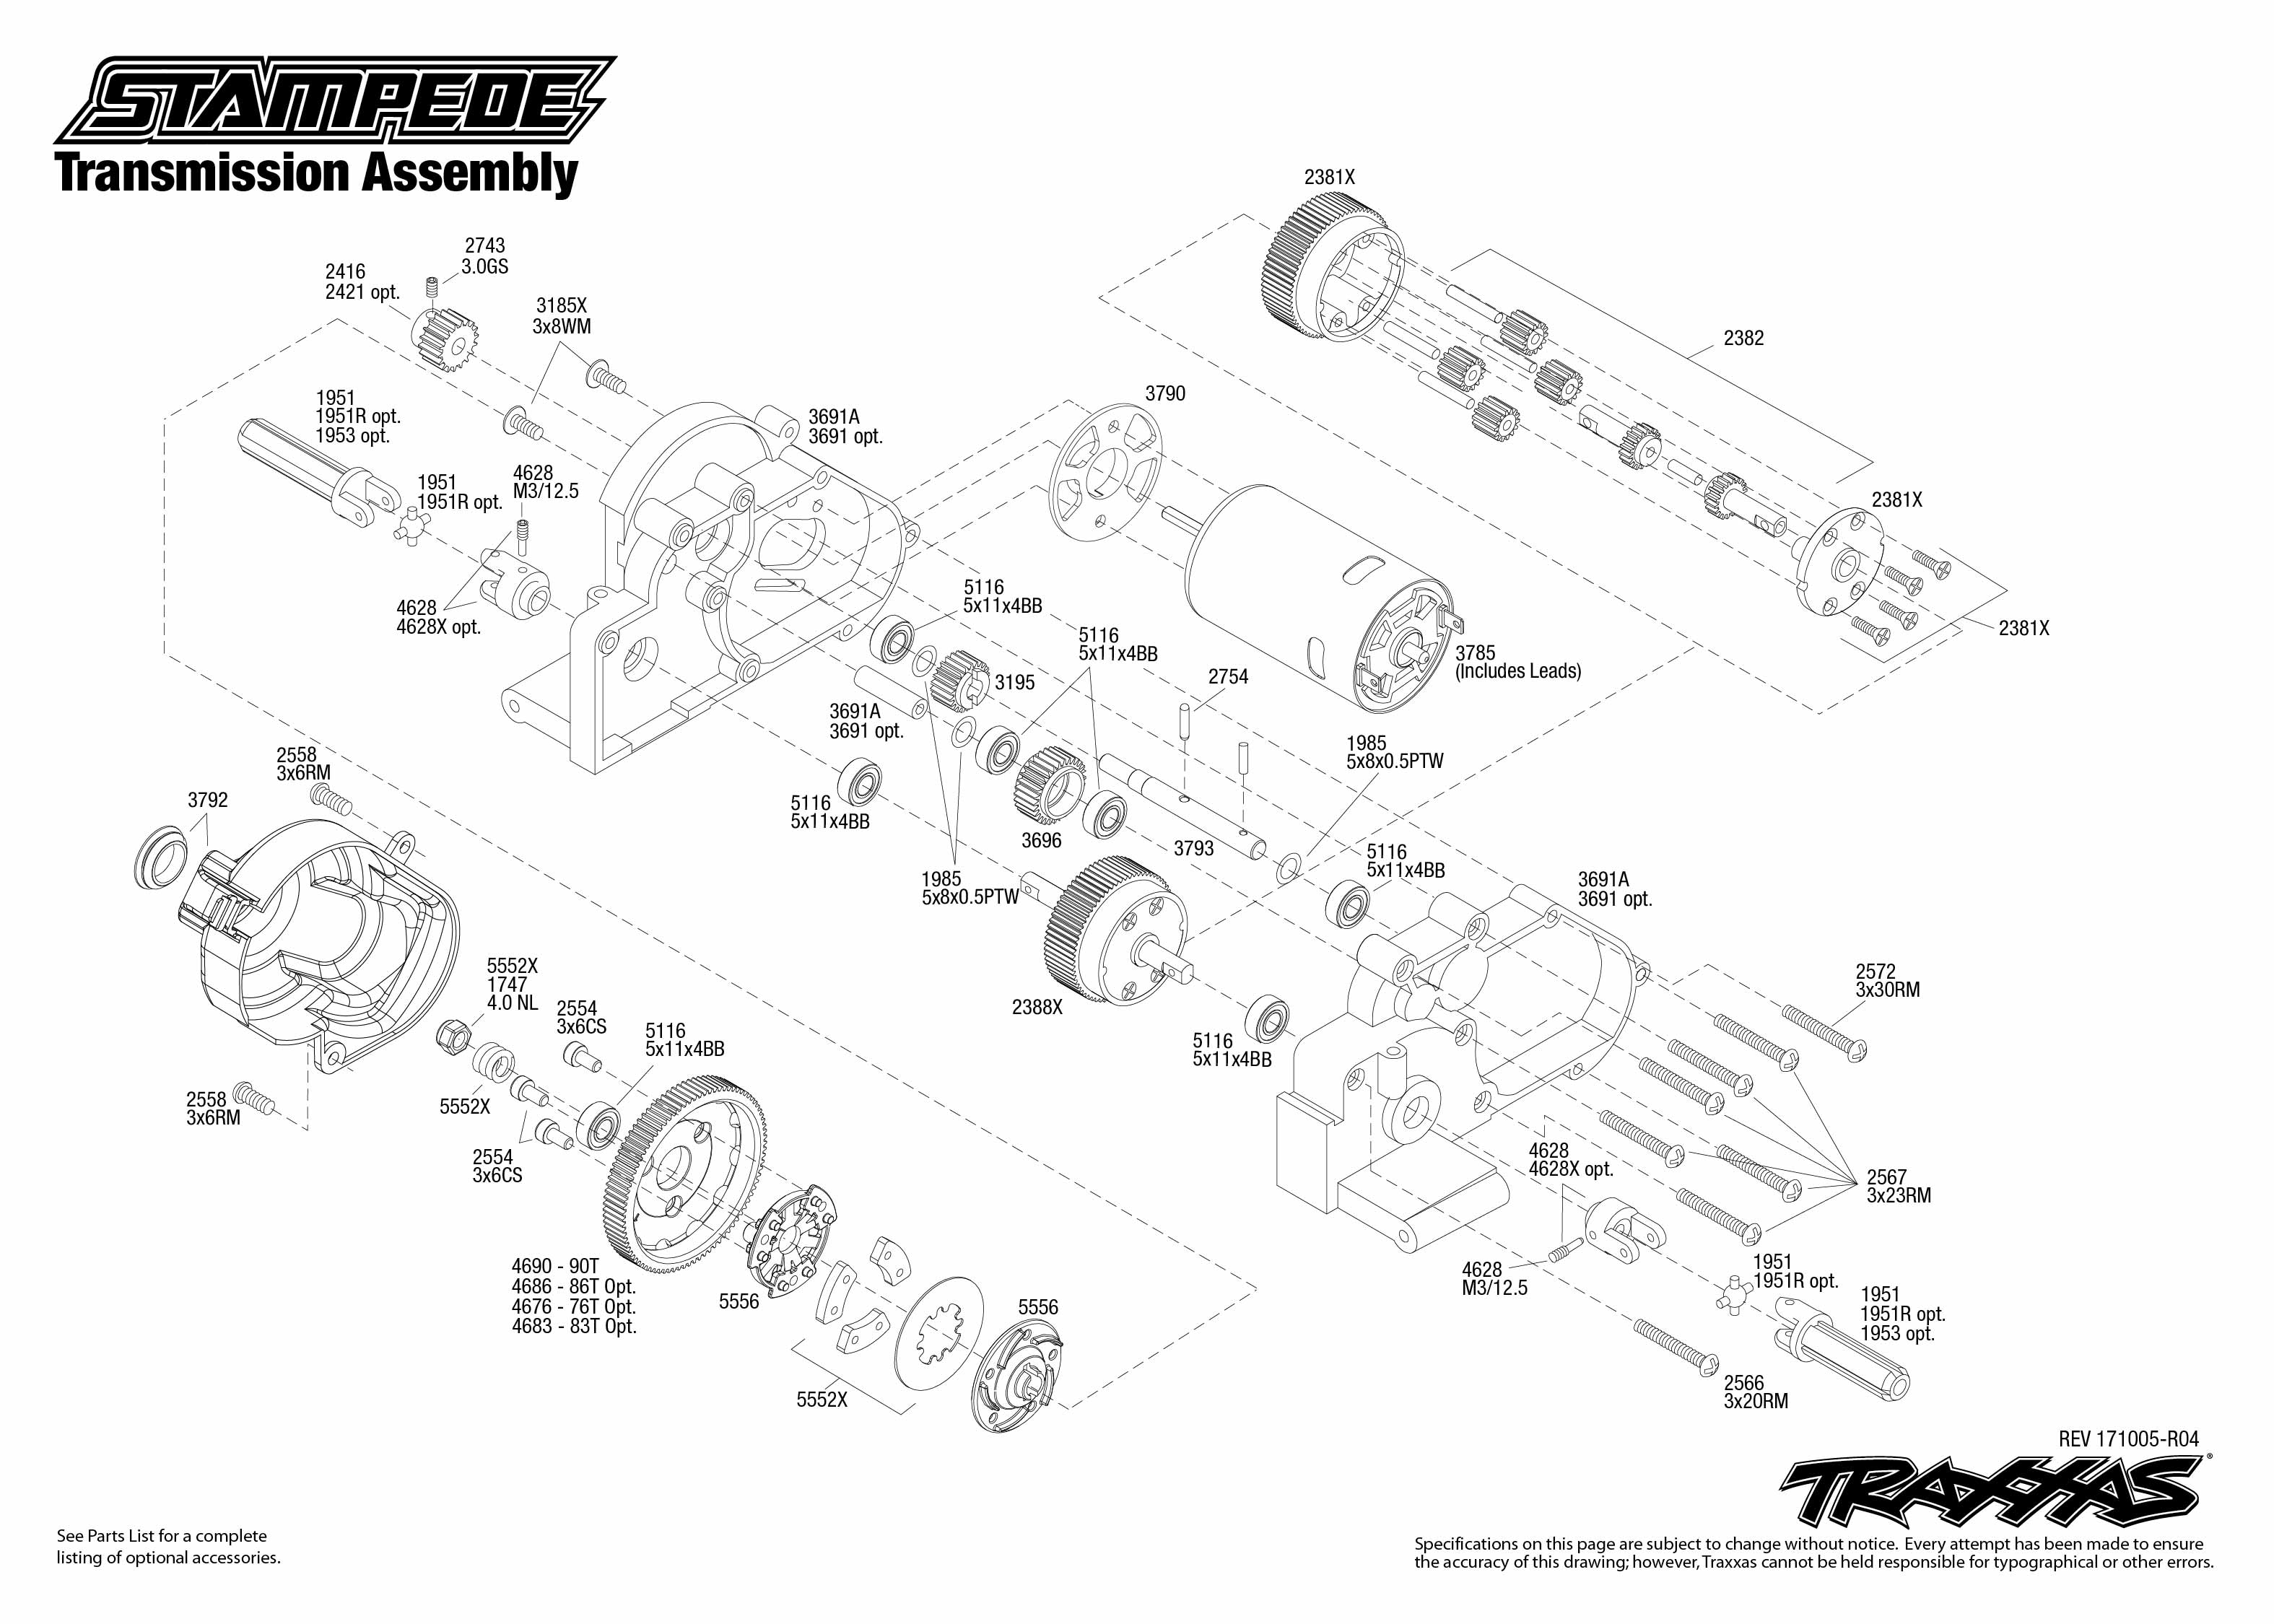 stampede 36054 1 transmission assembly exploded view traxxas rh traxxas com traxxas stampede 2wd parts manual traxxas stampede 2wd parts manual